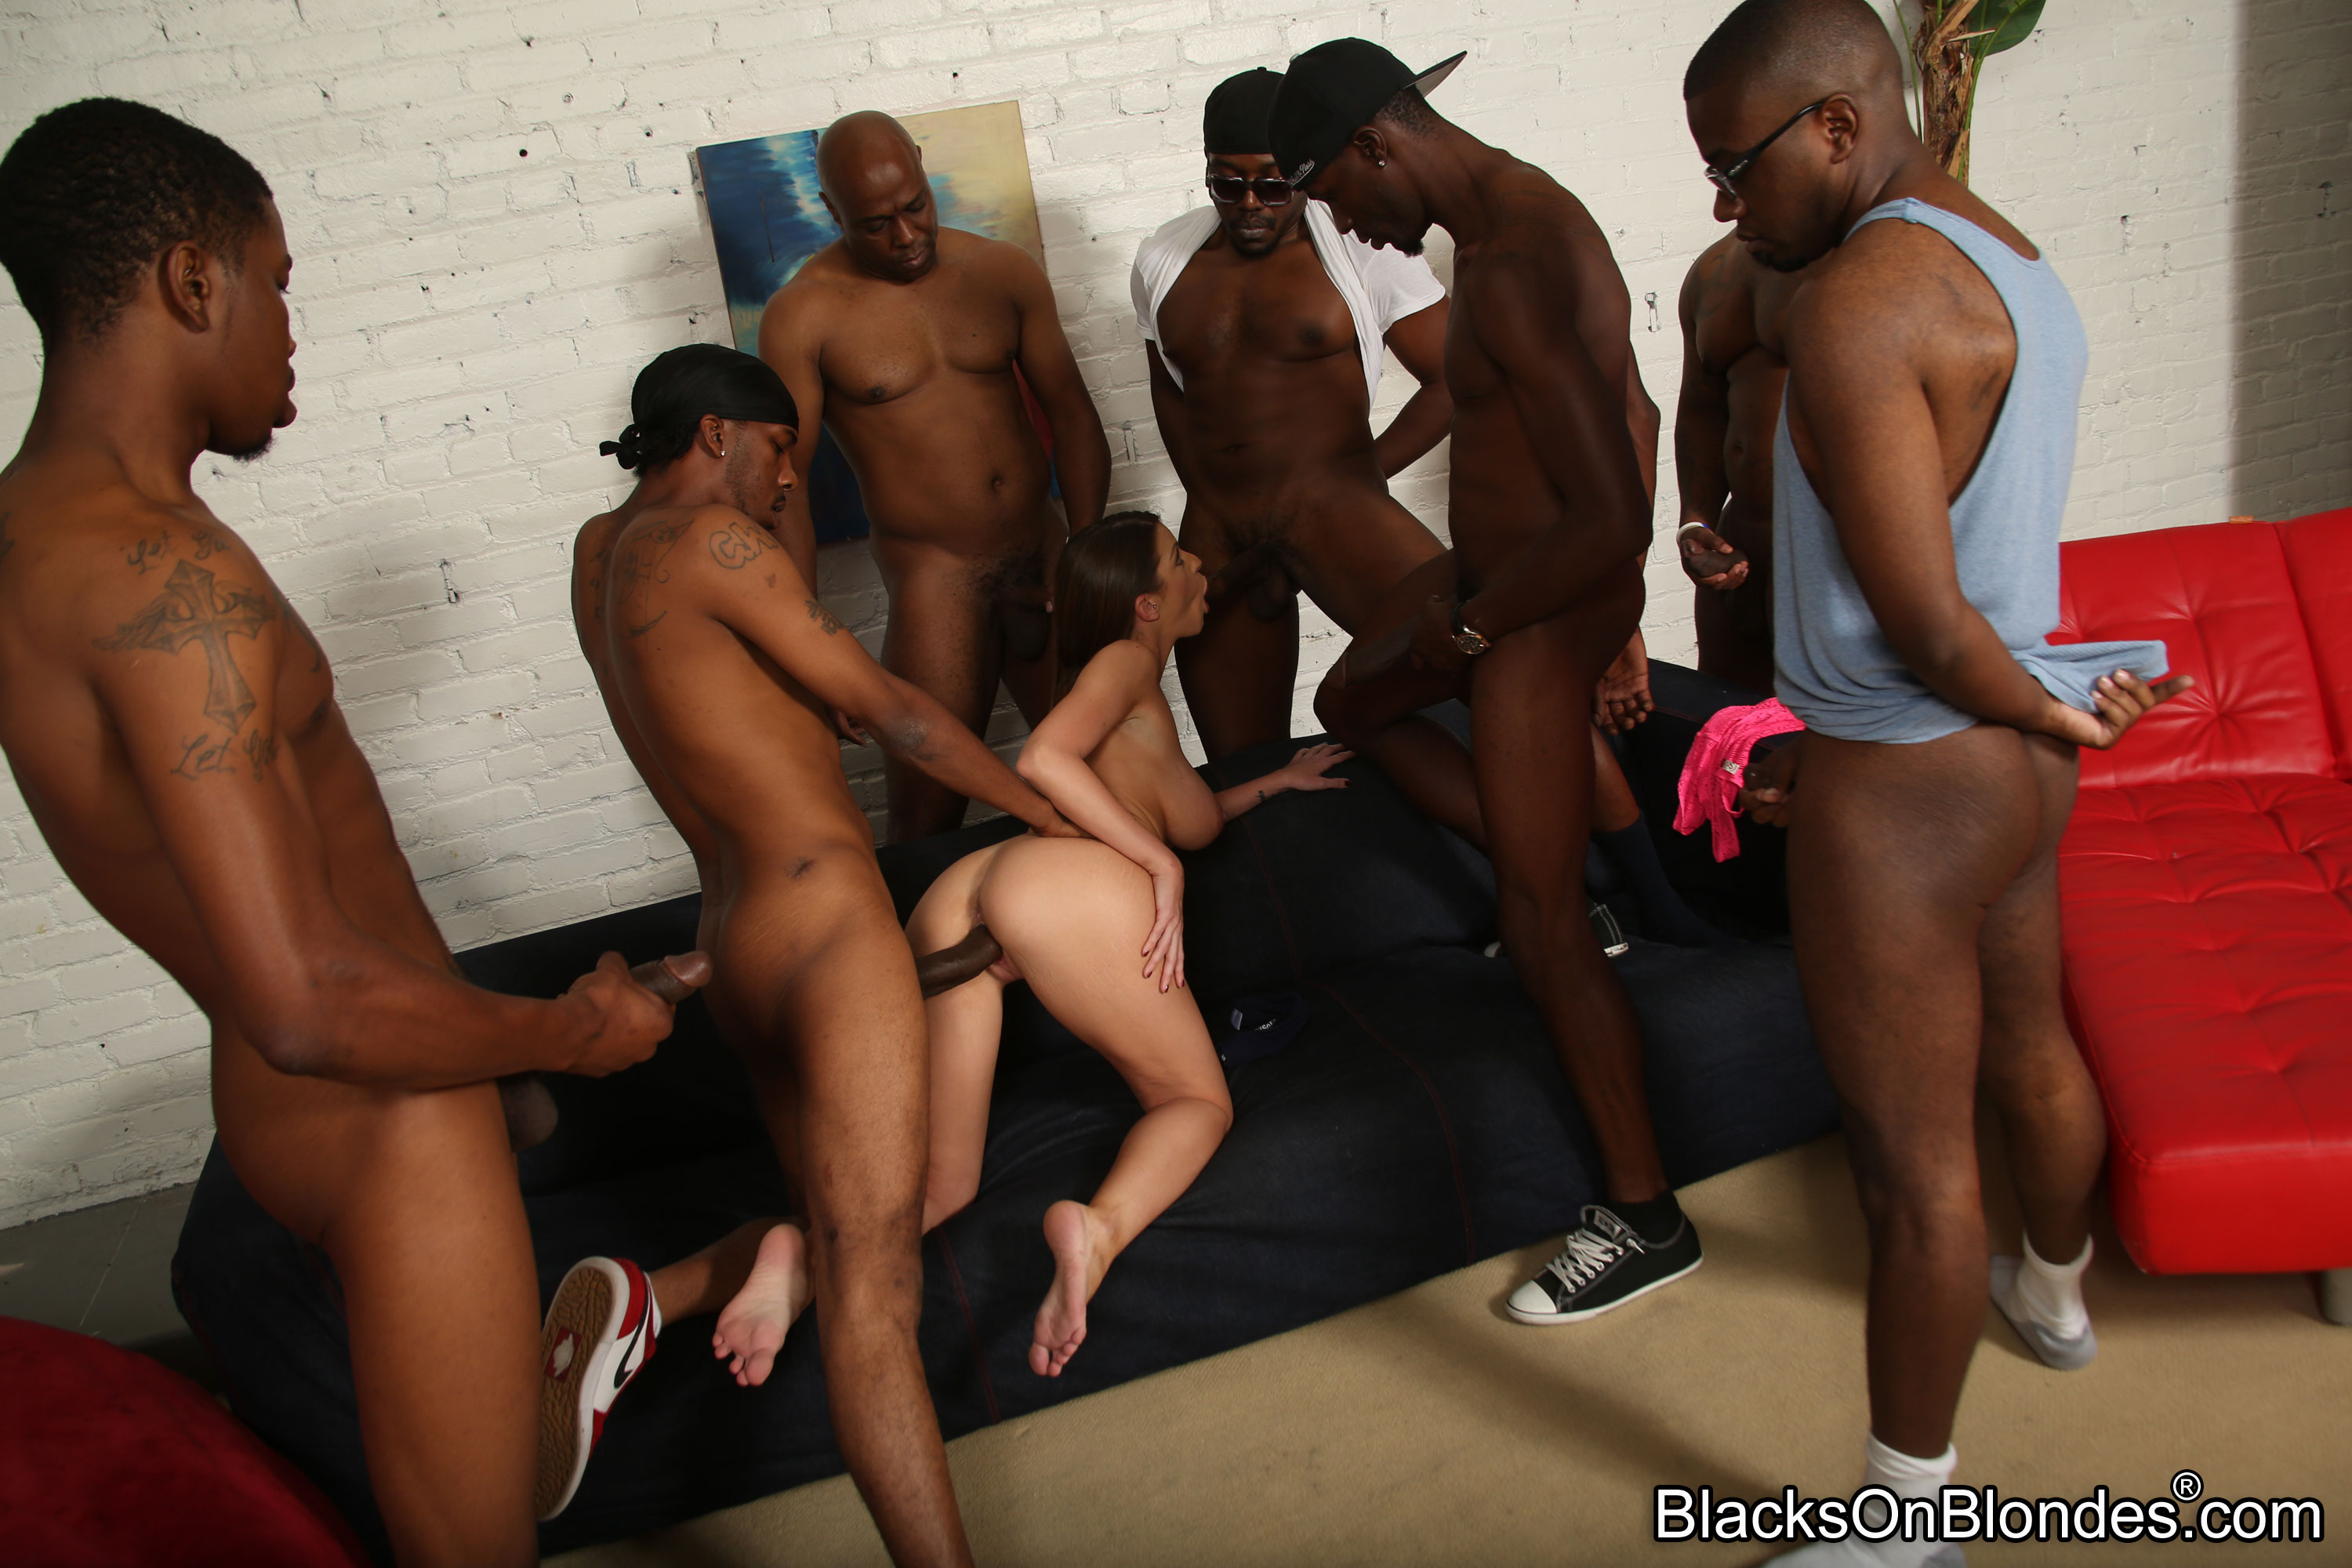 Lick her xxx interracial gangbang trailers comp